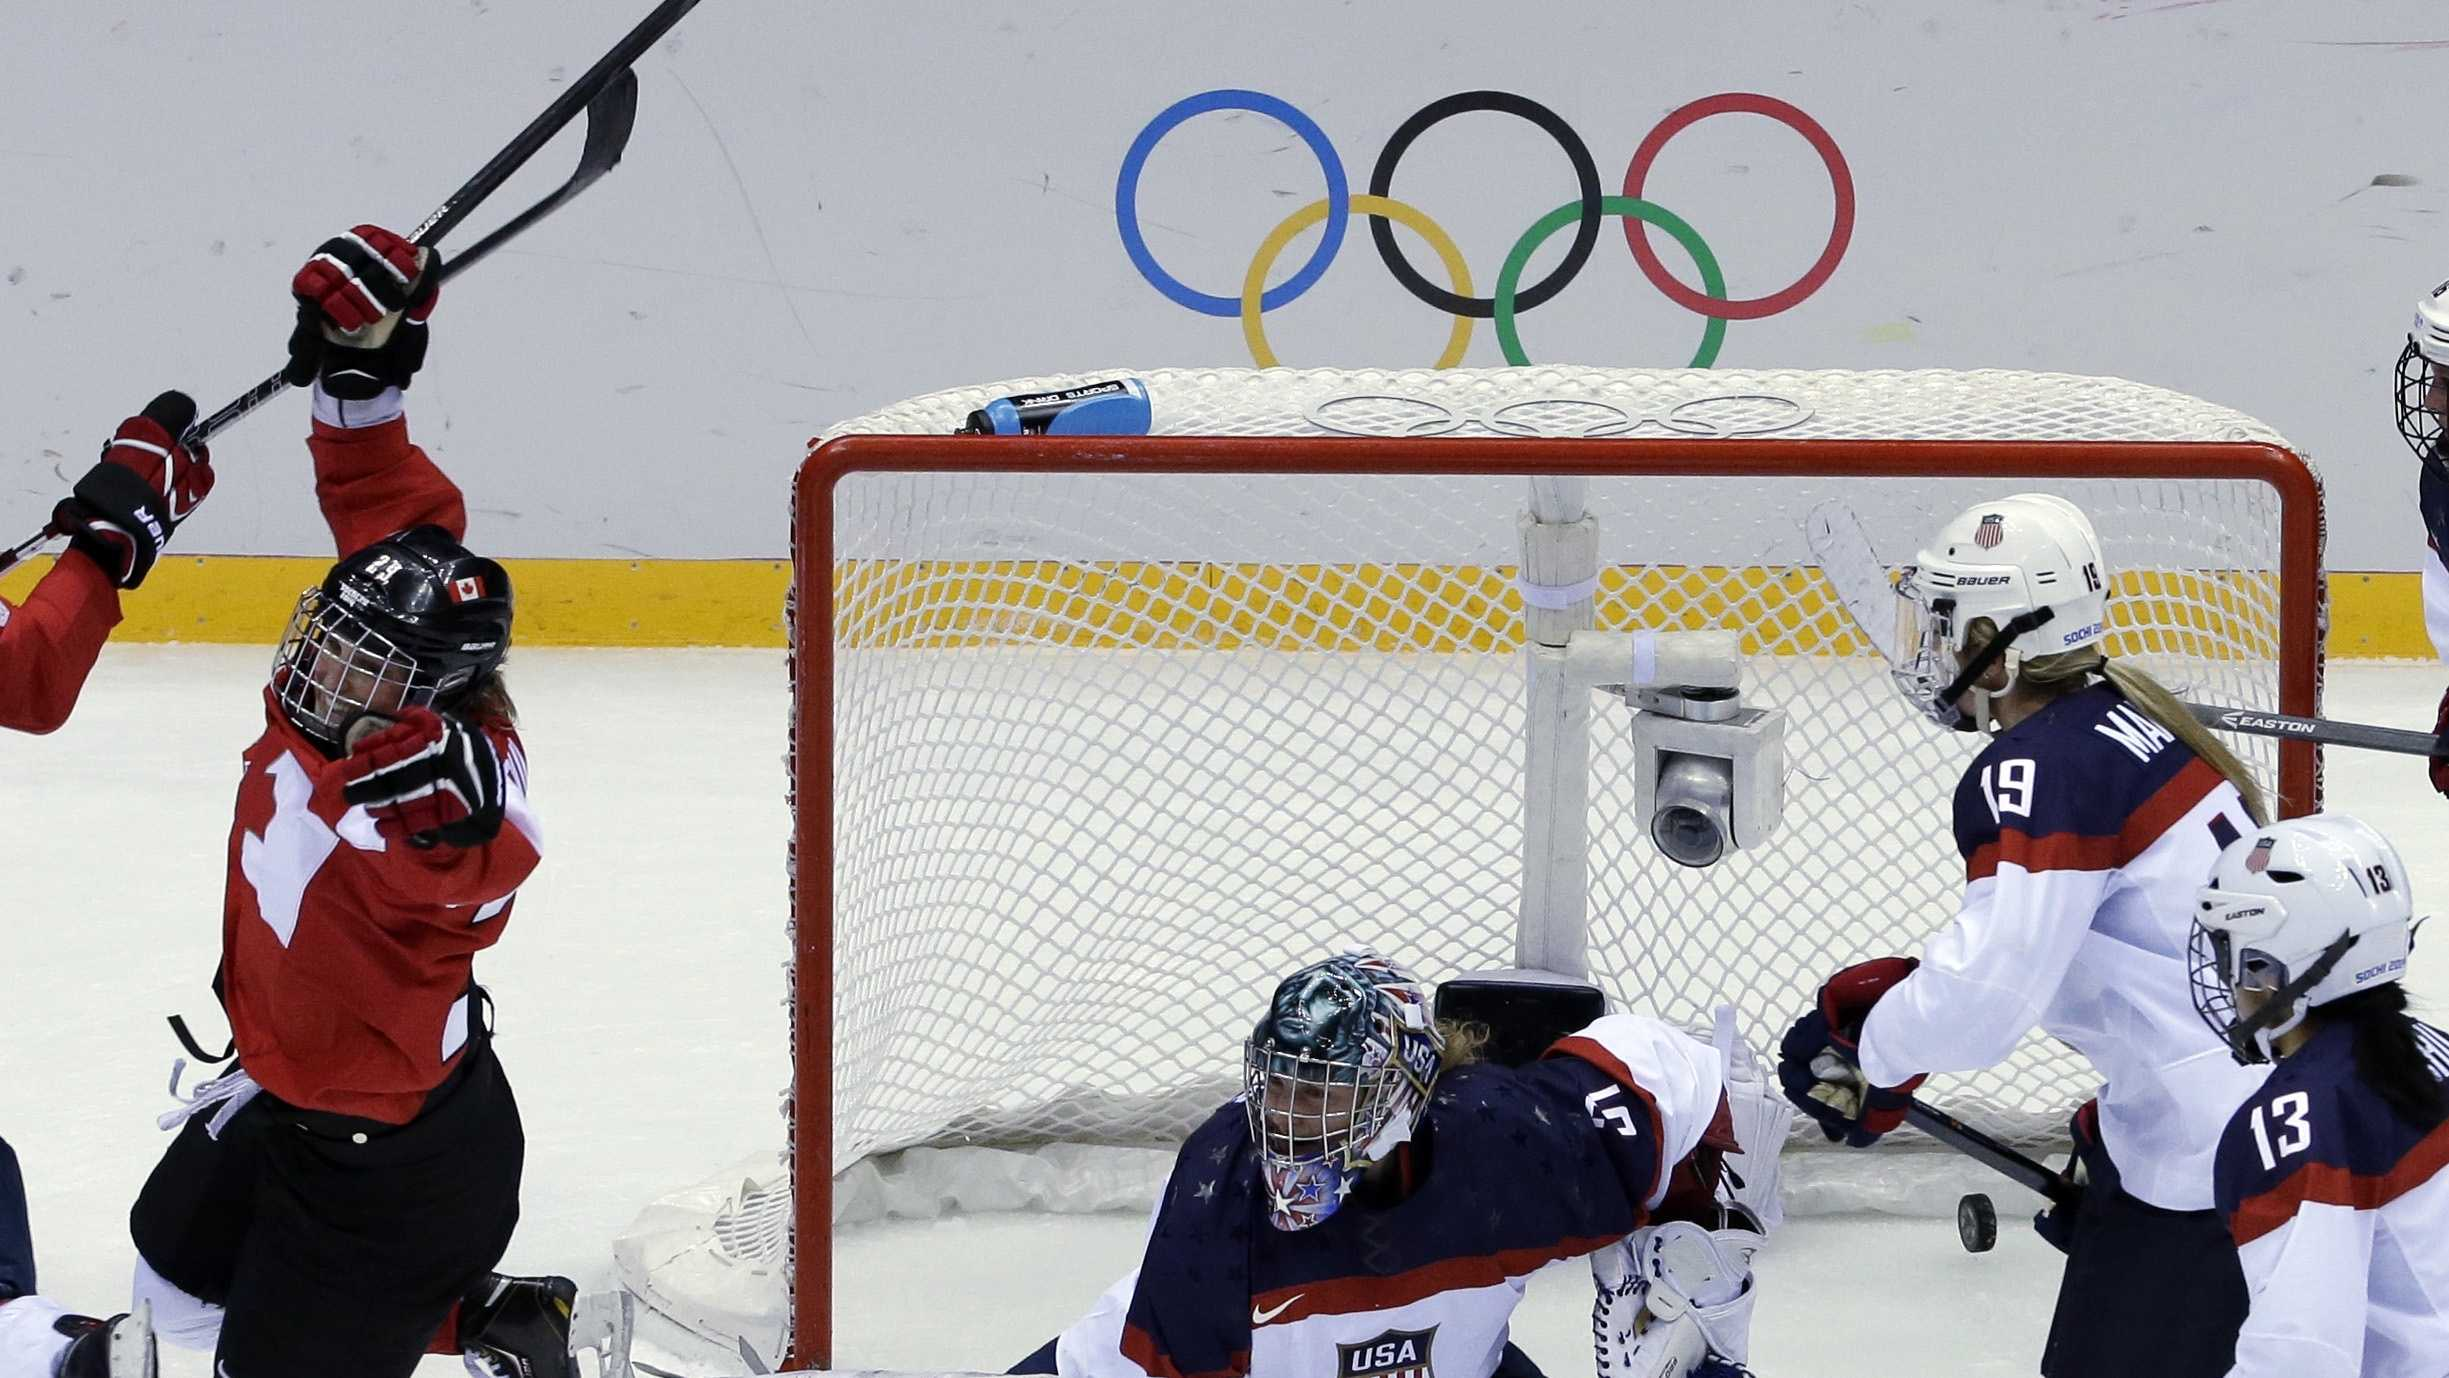 Marie-Philip Poulin of Canada (29) reacts after scoring past USA goalkeeper Jessie Vetter (31) of the women's gold medal ice hockey game at the 2014 Winter Olympics, Thursday, Feb. 20, 2014, in Sochi, Russia.